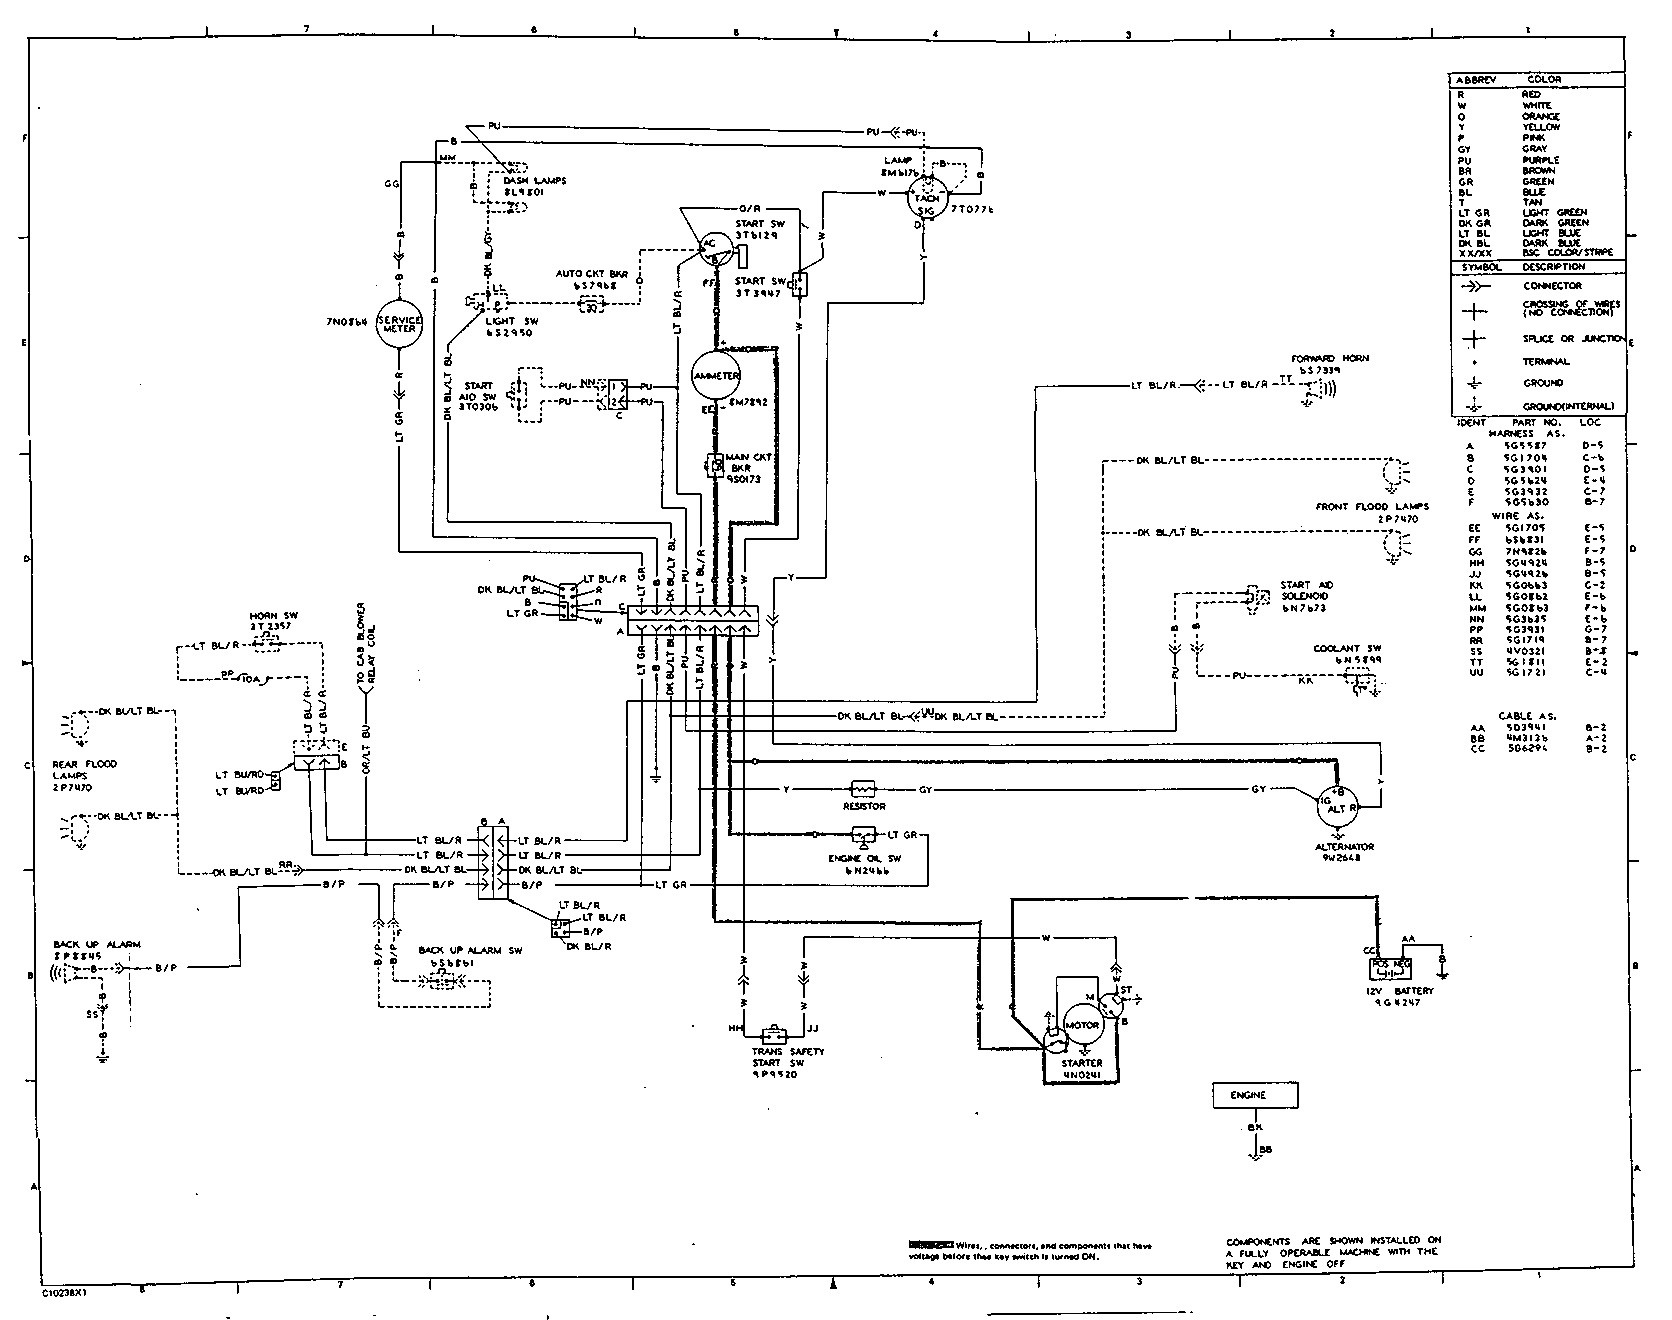 Car Wiring Diagrams Pdf On Vacuum Line Diagram For A 1995 Chevy Tahoe